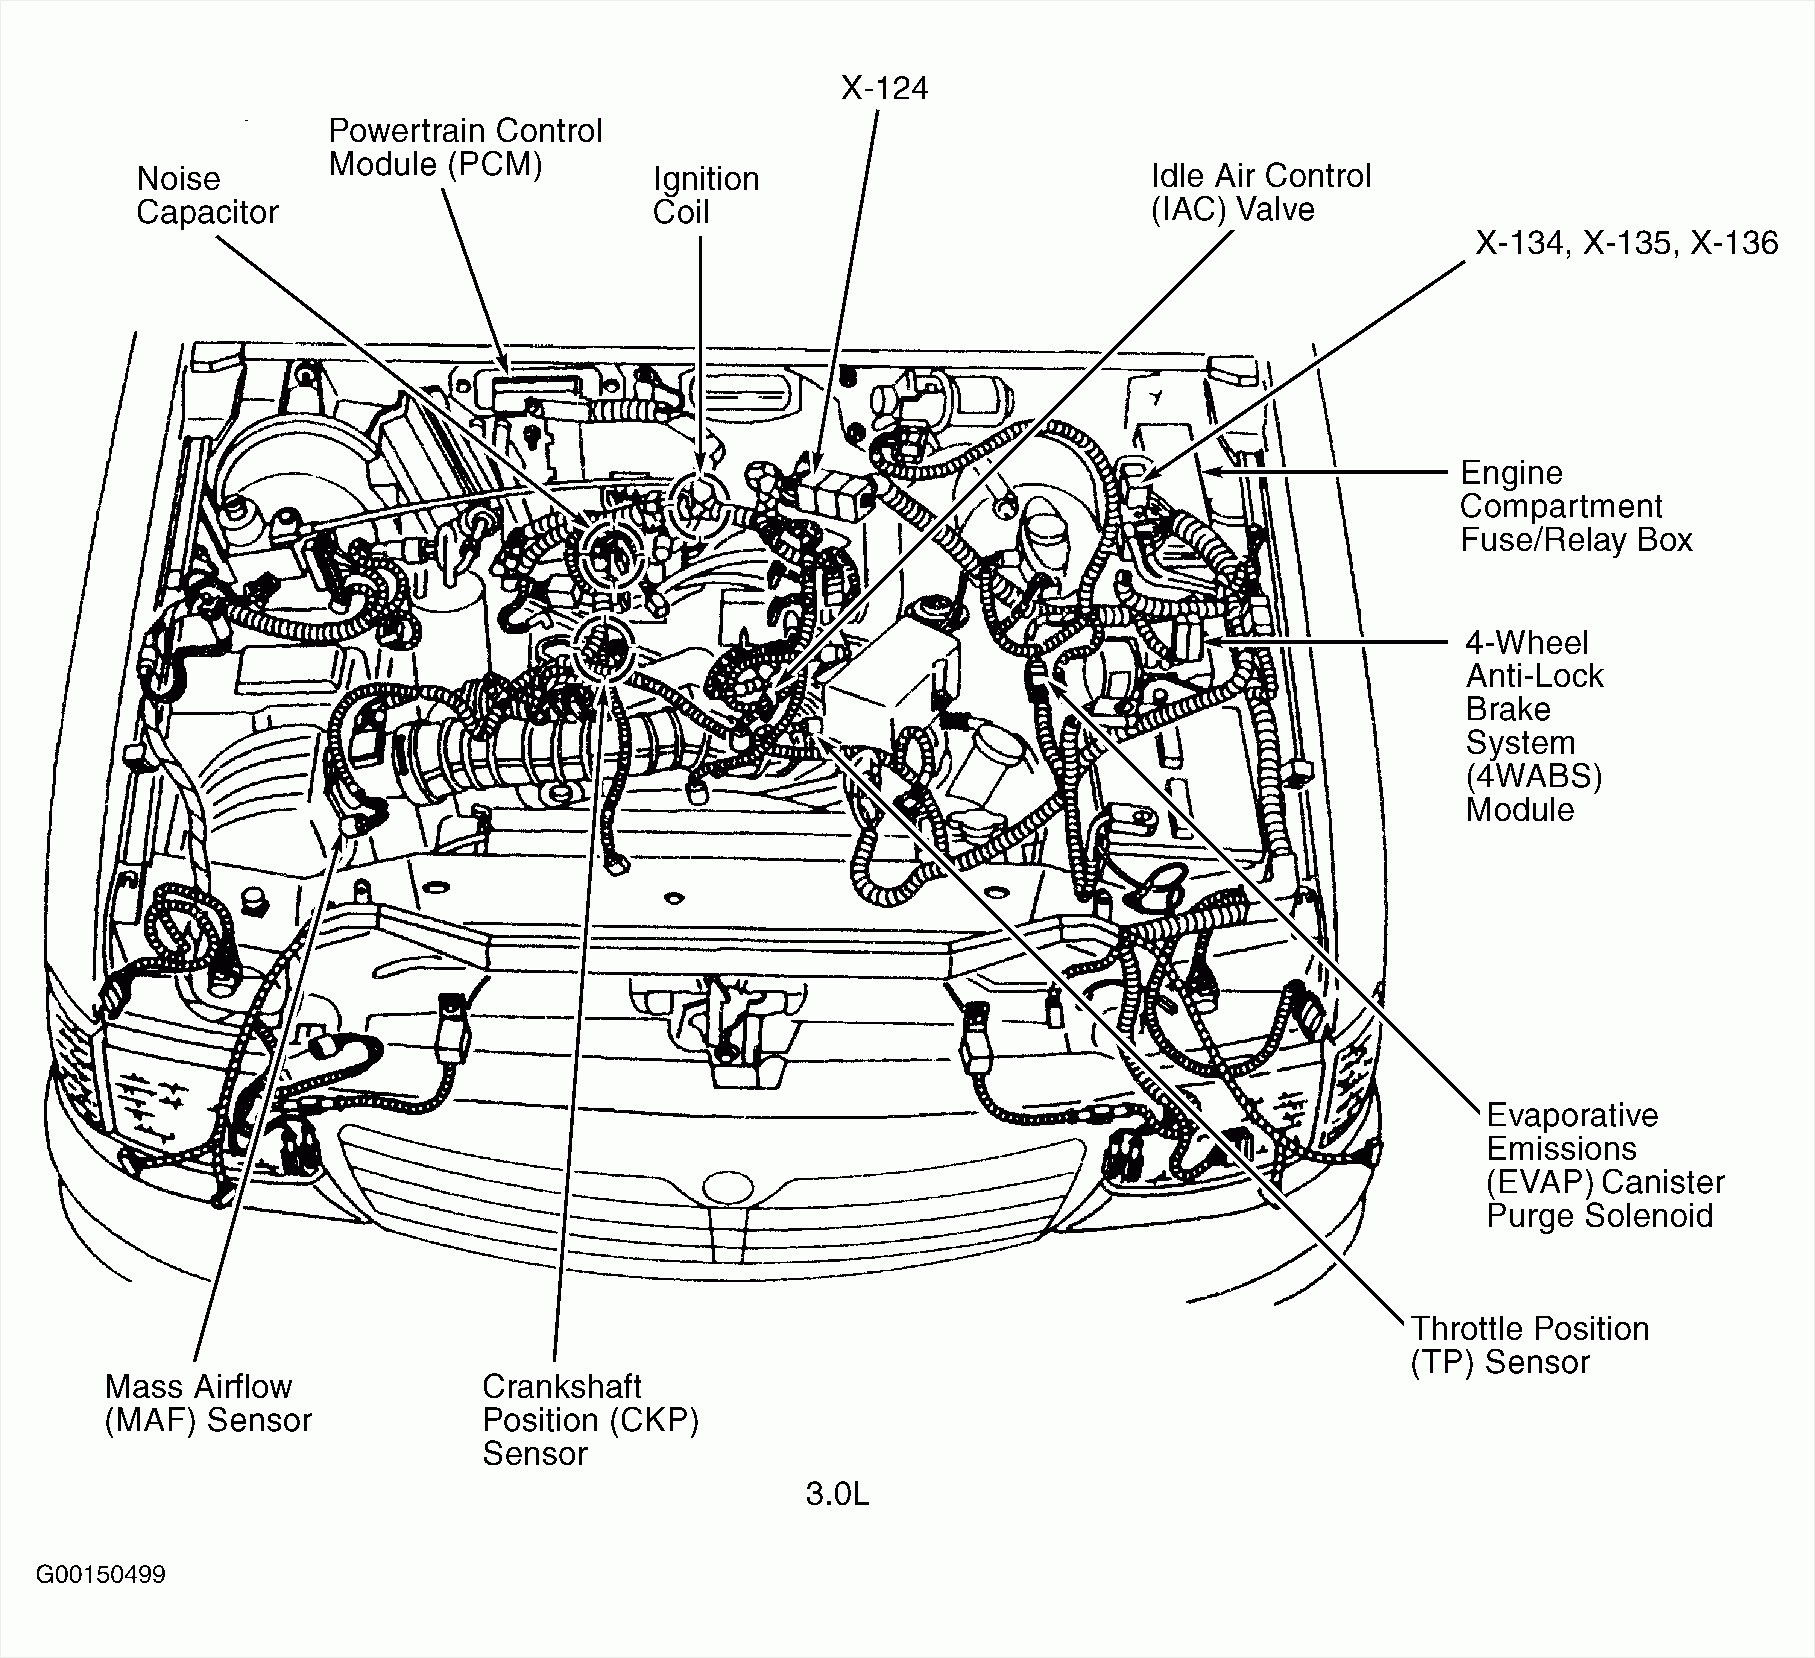 ford 3 3l engine diagram easy rules of wiring diagram u2022 rh lushpuppy co  2002 Chrysler Sebring Engine Diagram 2002 Chrysler Town and Country Wiring-  ...